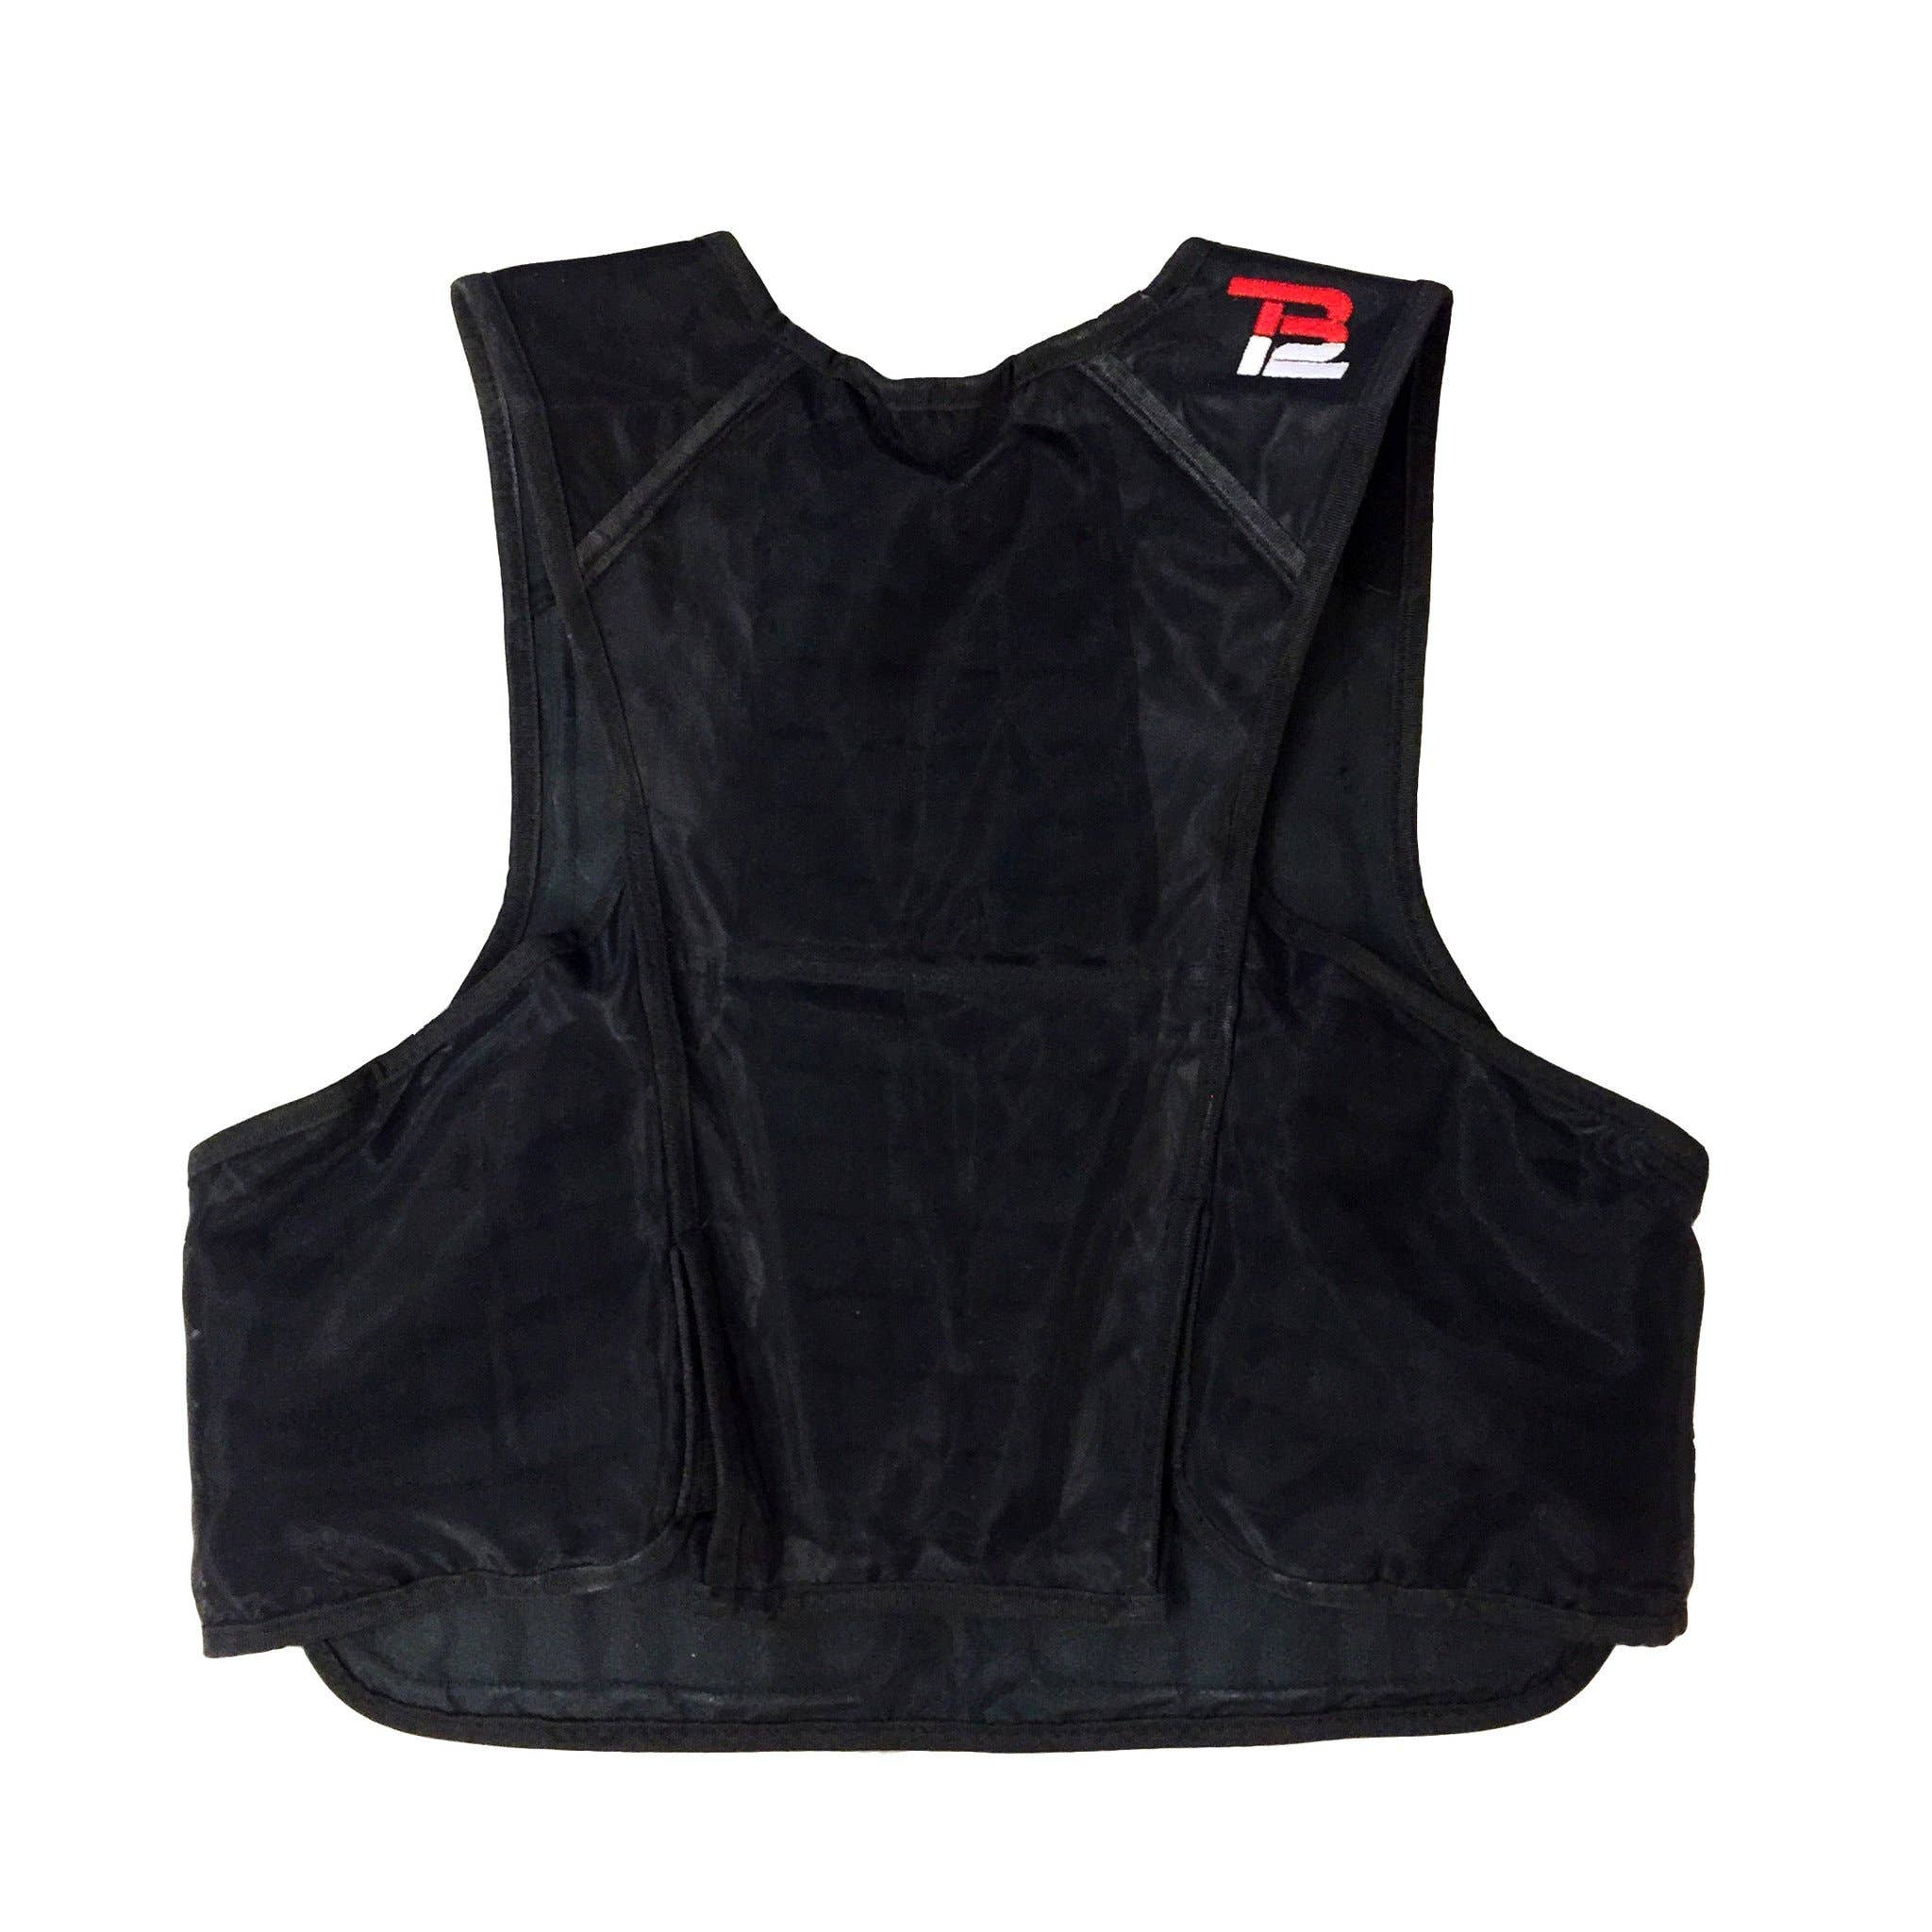 TB12™ Weighted Vest - Back